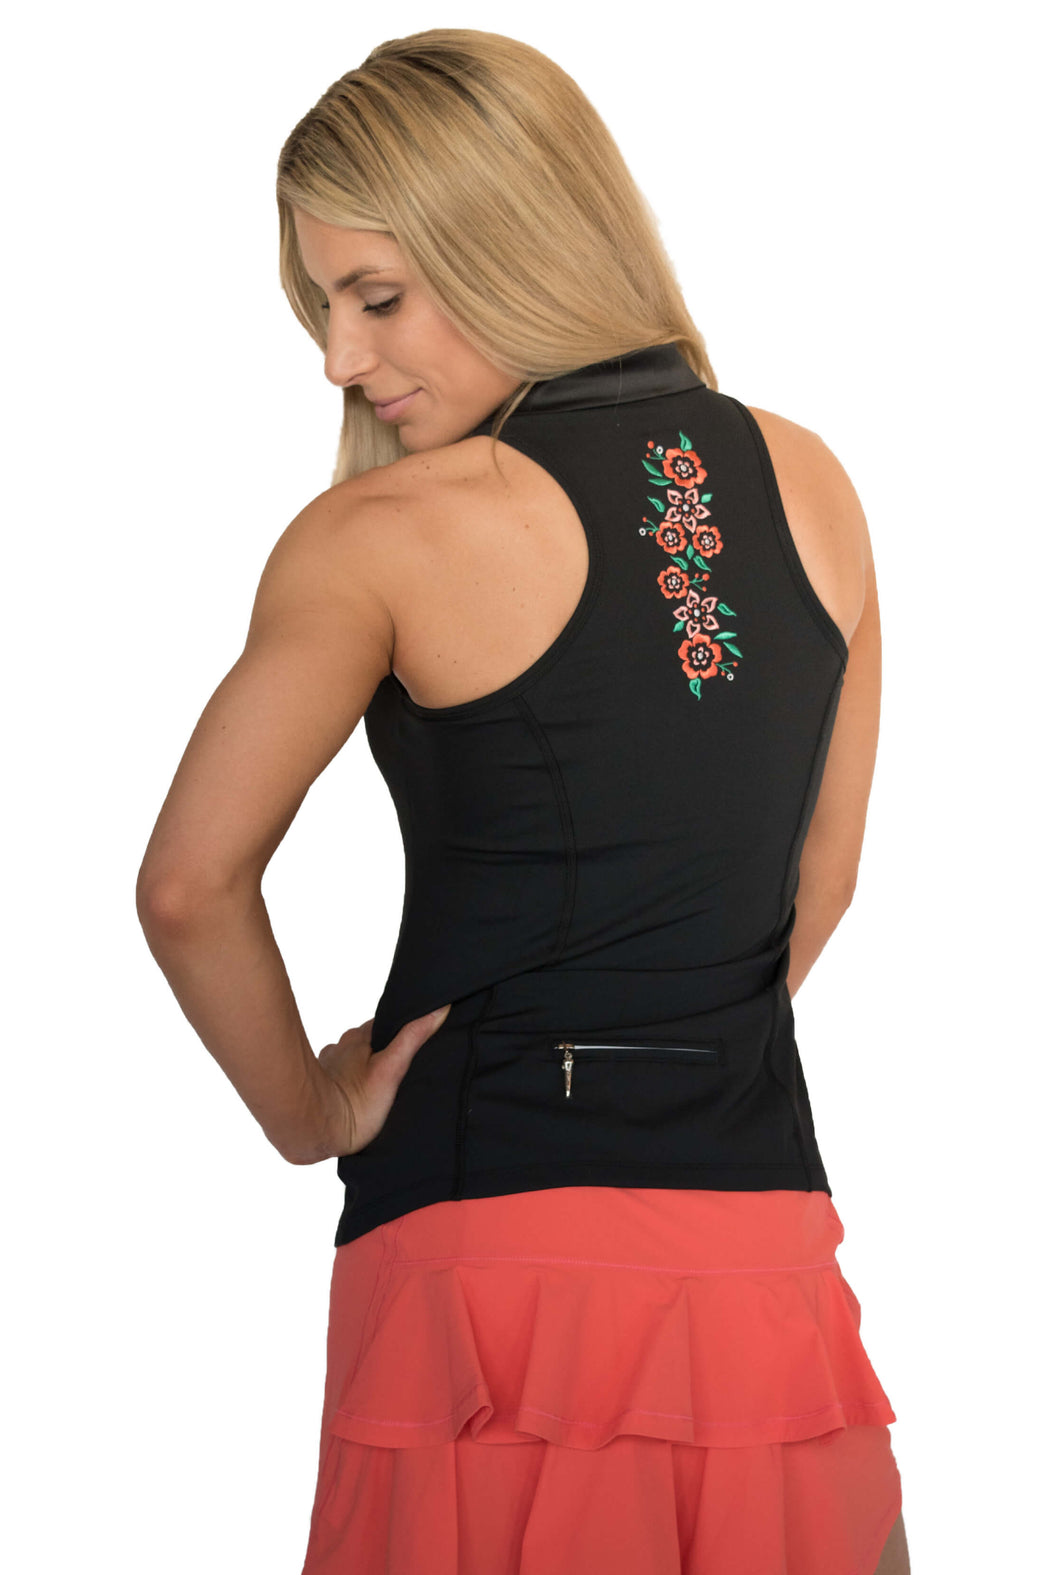 NEW! Limited Edition! Embroidered Racerback Golf Polo - Black - FlirTee Golf